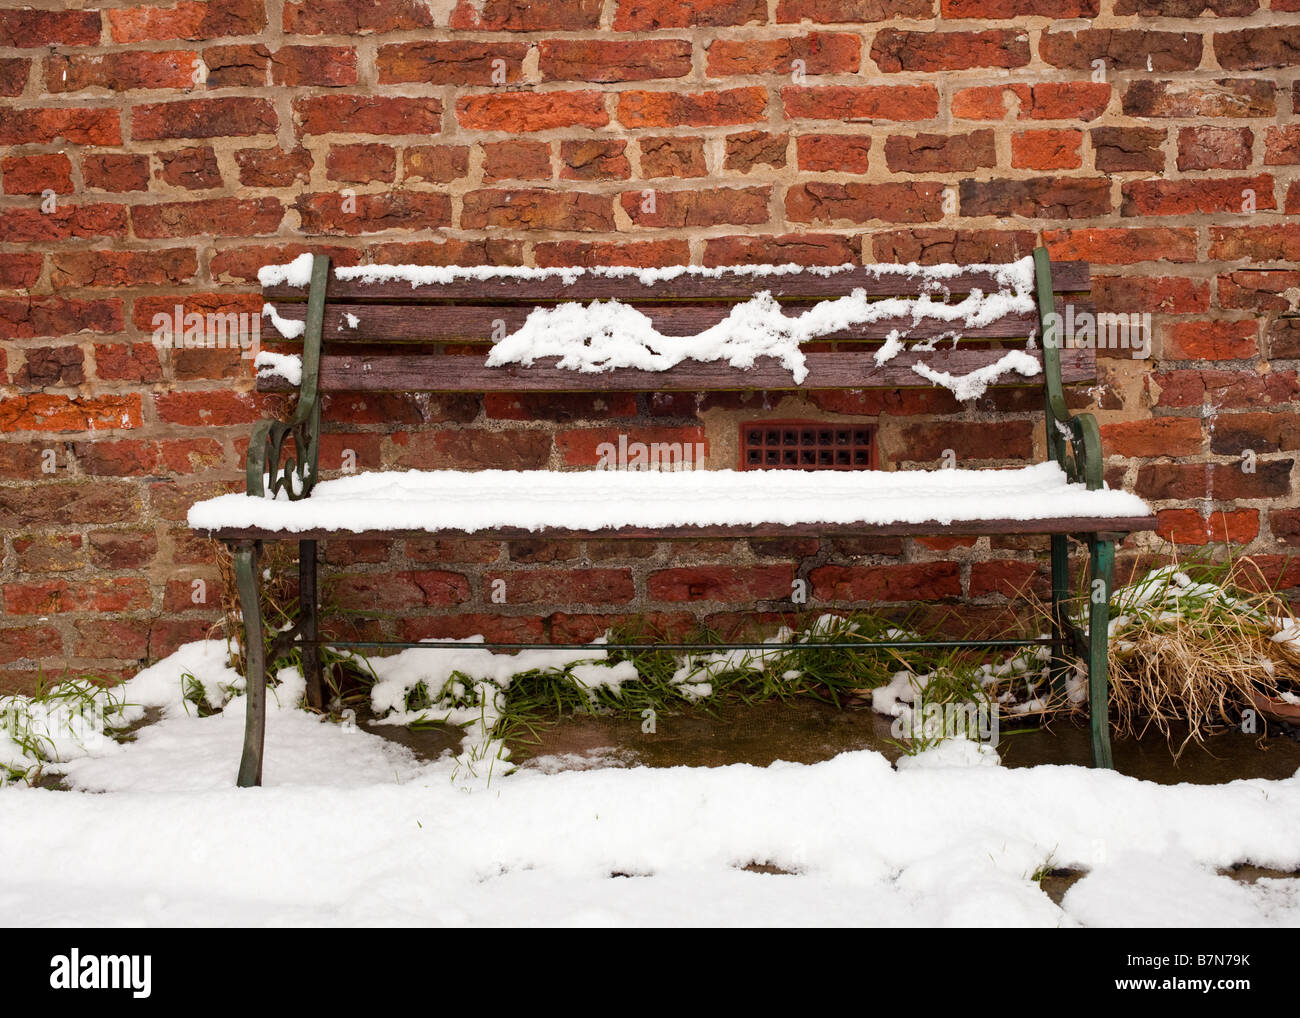 Old garden seat bench covered in snow in an English garden in winter - Stock Image